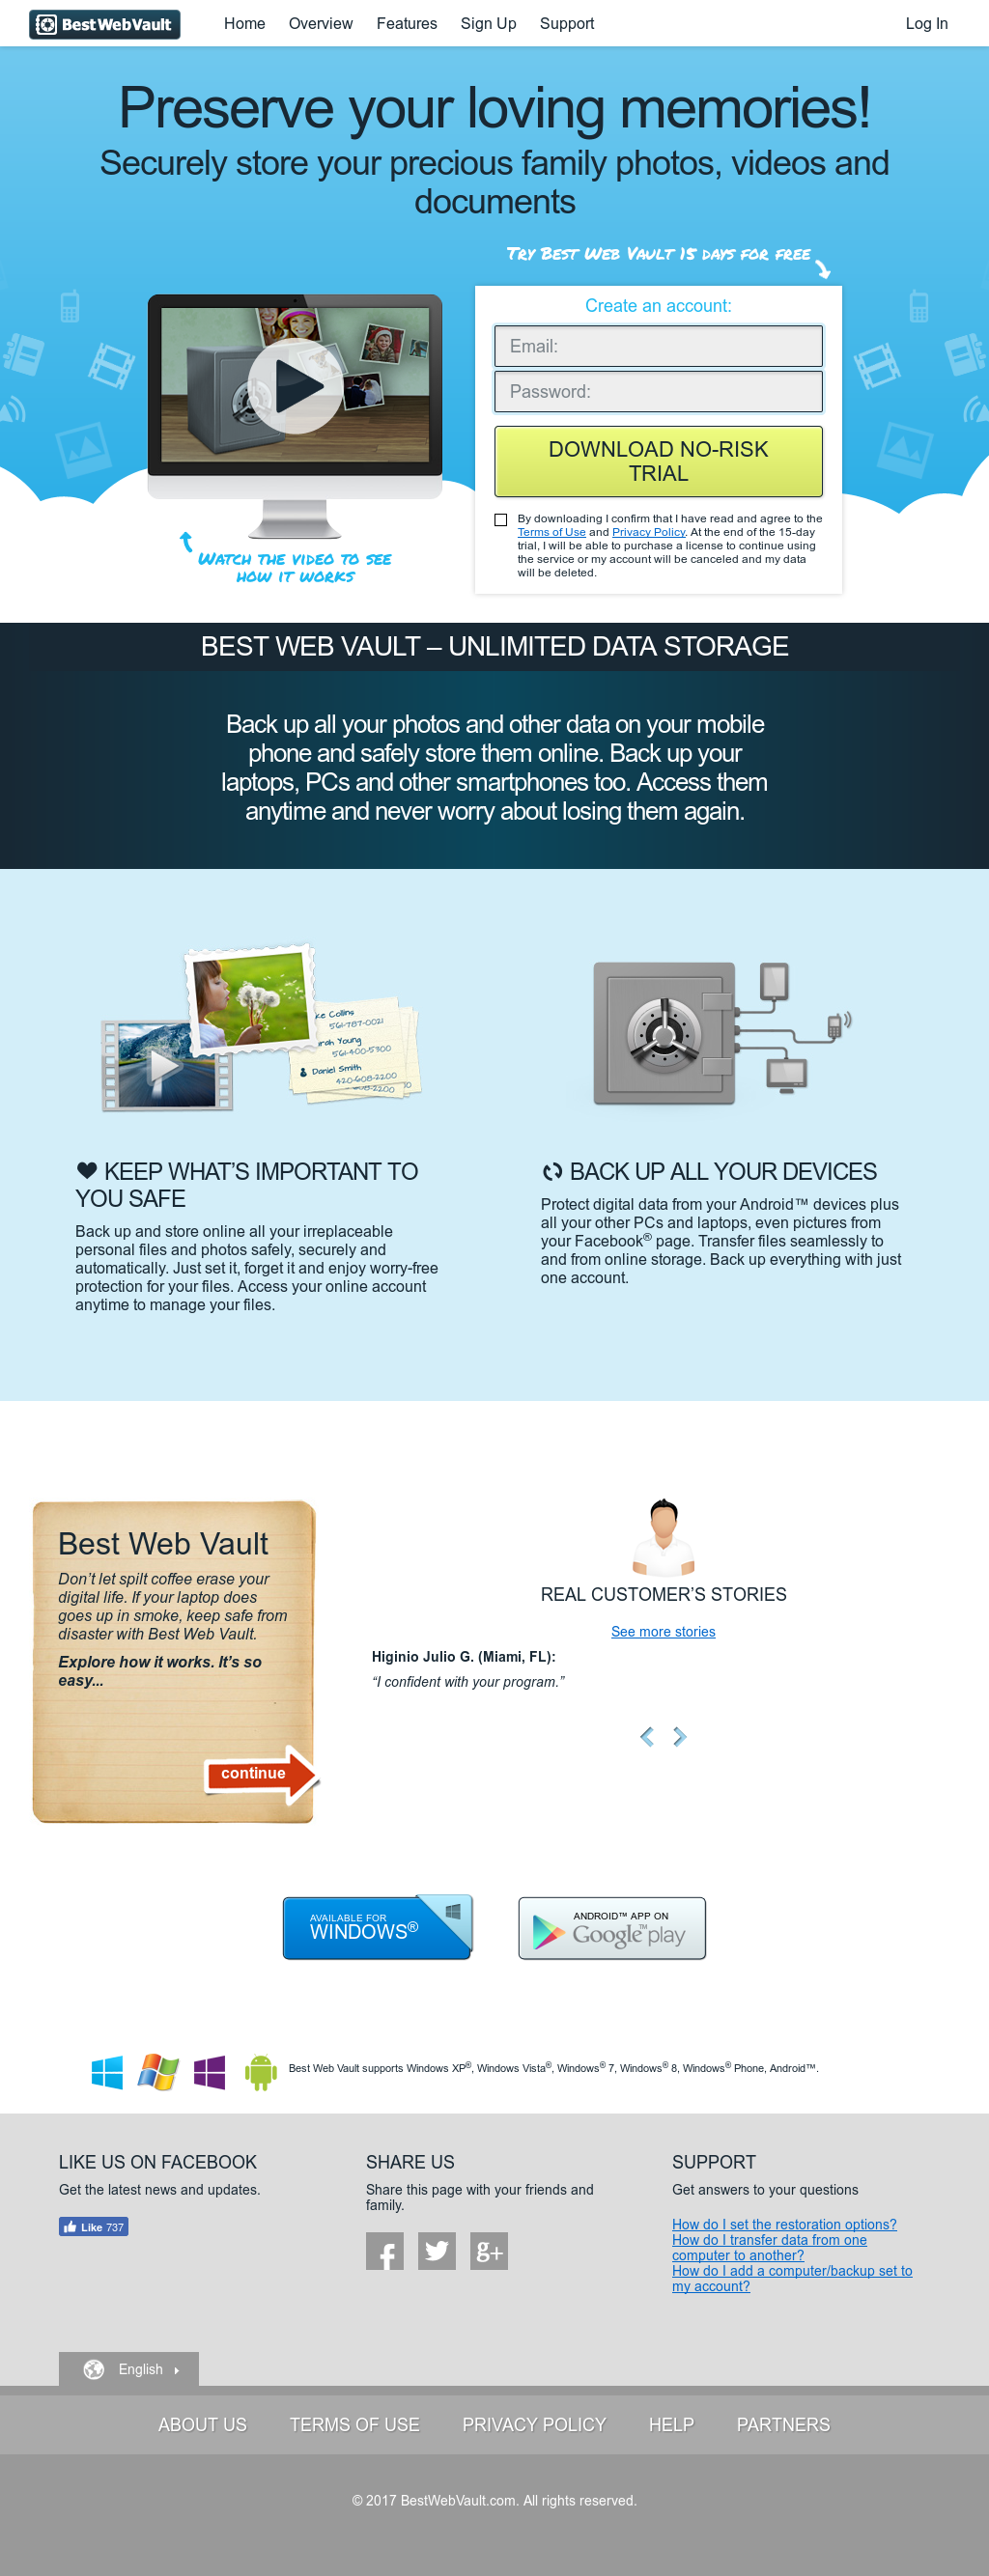 Best Web Vault Competitors, Revenue and Employees - Owler